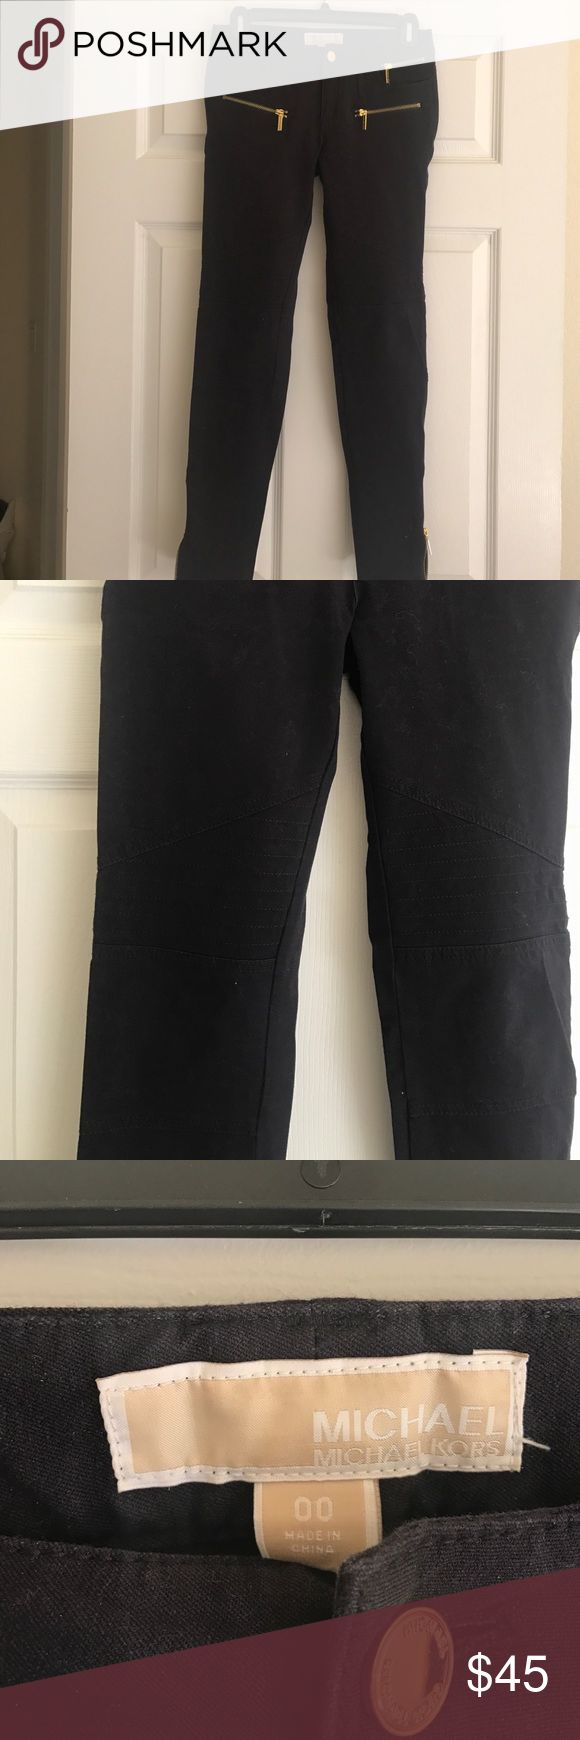 Navy Michael Kors moto pants Refectory condition. Never worn. Navy blue moto MK pants with gold zipper accents on pockets and bottom of legs. Only selling bc I just never wore them MICHAEL Michael Kors Pants